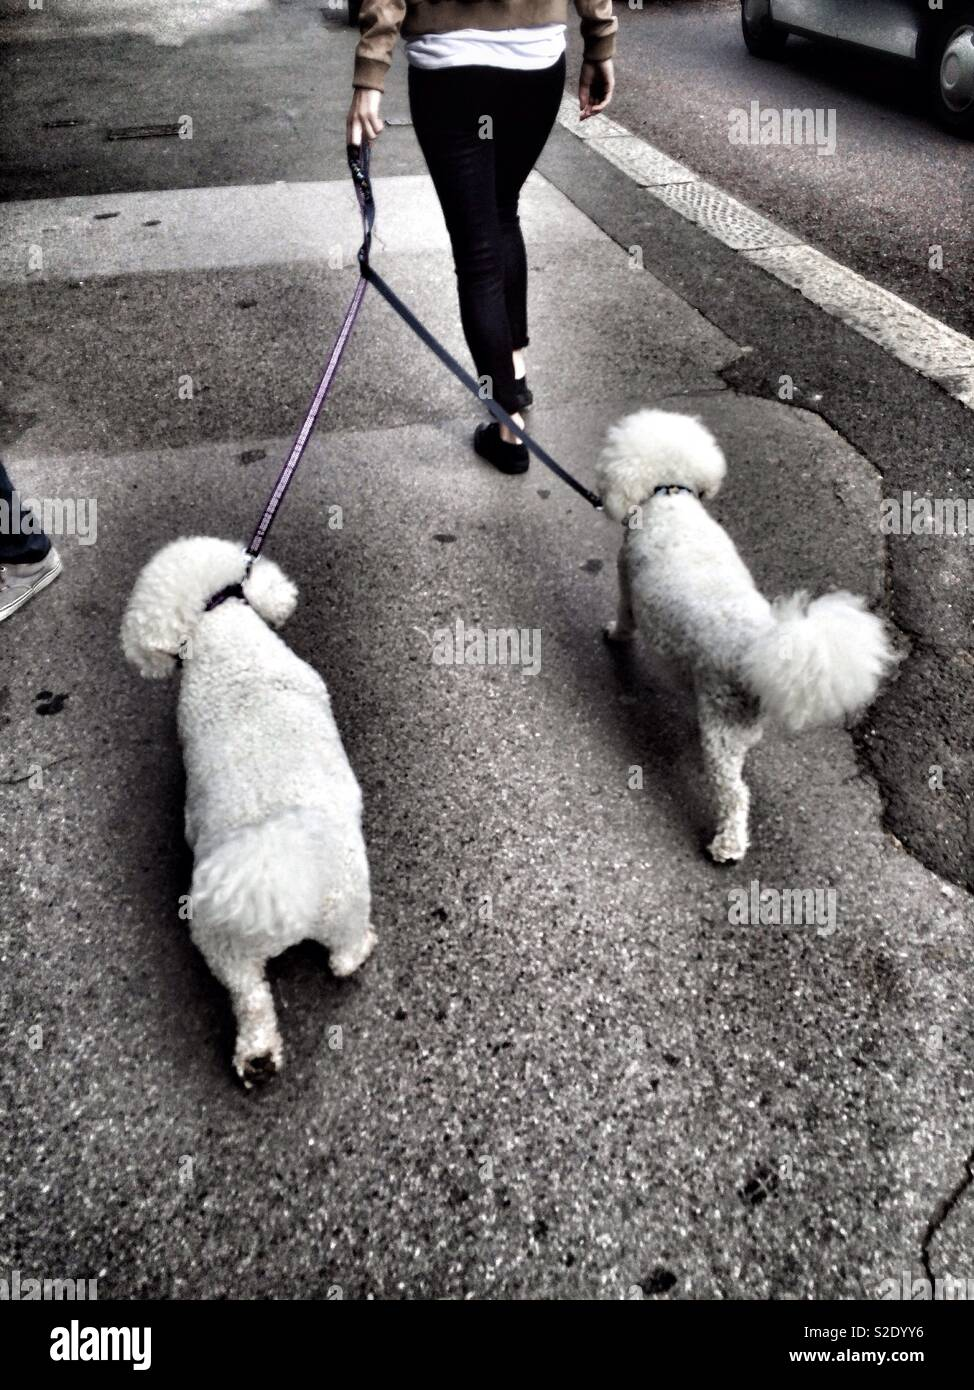 Two toy poodles out for a walk - Stock Image